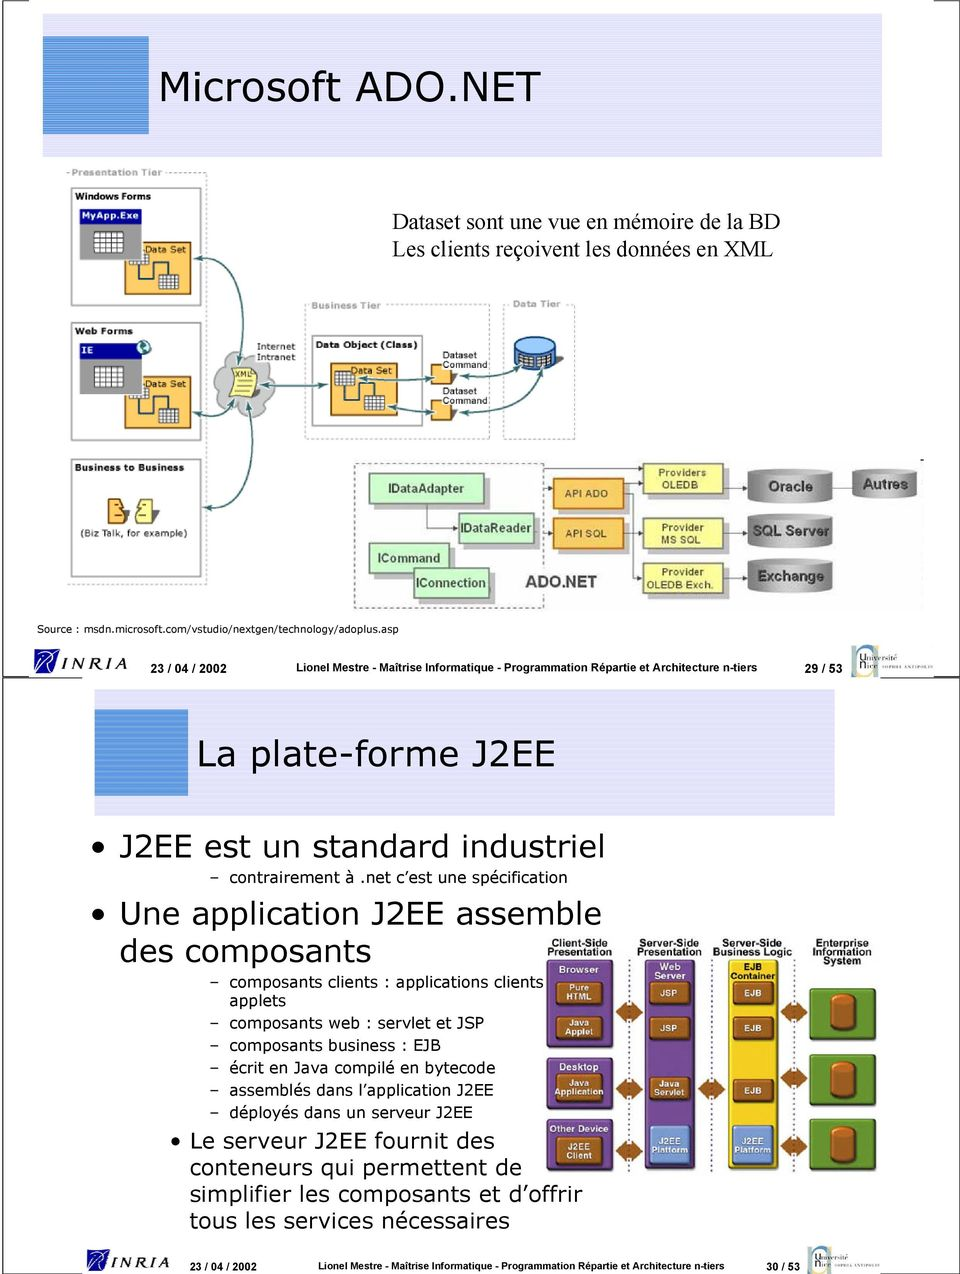 net c est une spécification Une application J2EE assemble des composants composants clients : applications clients, applets composants web : servlet et JSP composants business : EJB écrit en Java